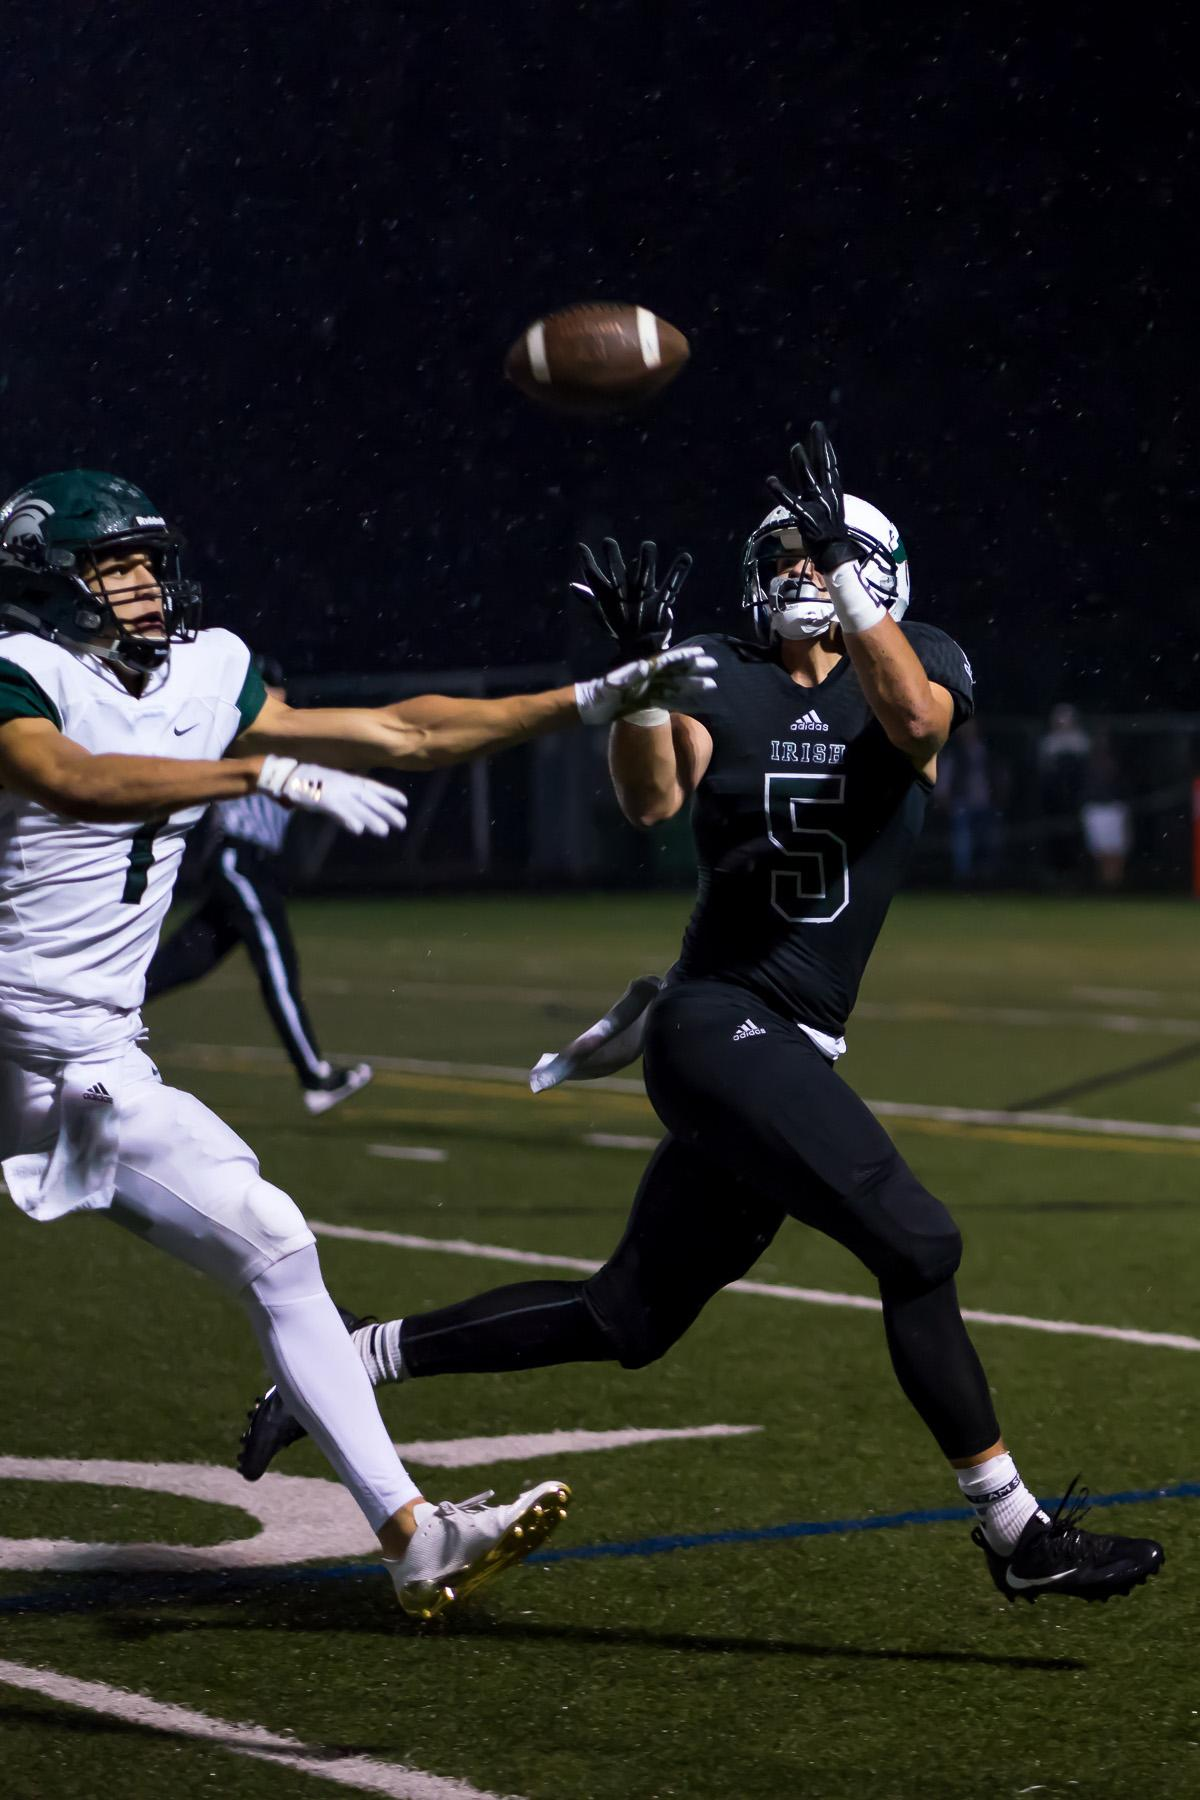 Sheldon's Patrick Herbert (#5) catches a pass. On a rainy Monday evening, Sheldon defeated West Salem at home 41 – 7. The game had been postponed until Monday, September 18, due to unhealthy levels of smoke in the air caused by nearby forest fires. Photo by Kit MacAvoy, Oregon News Lab